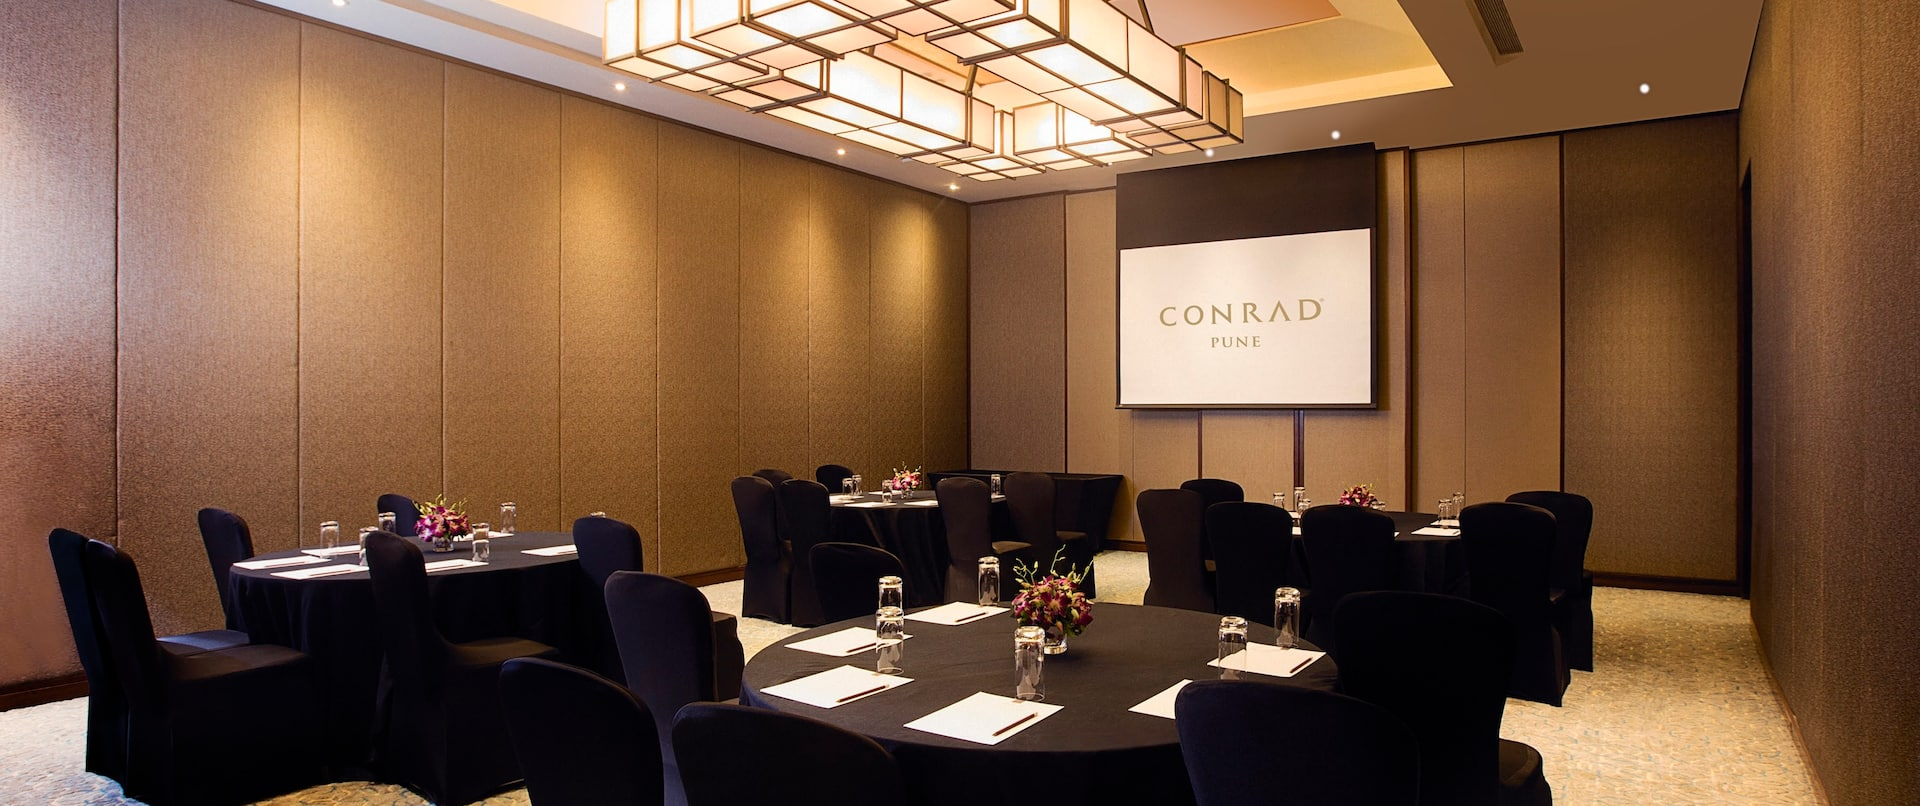 Aster Meeting Room Set up with Black Round Tables